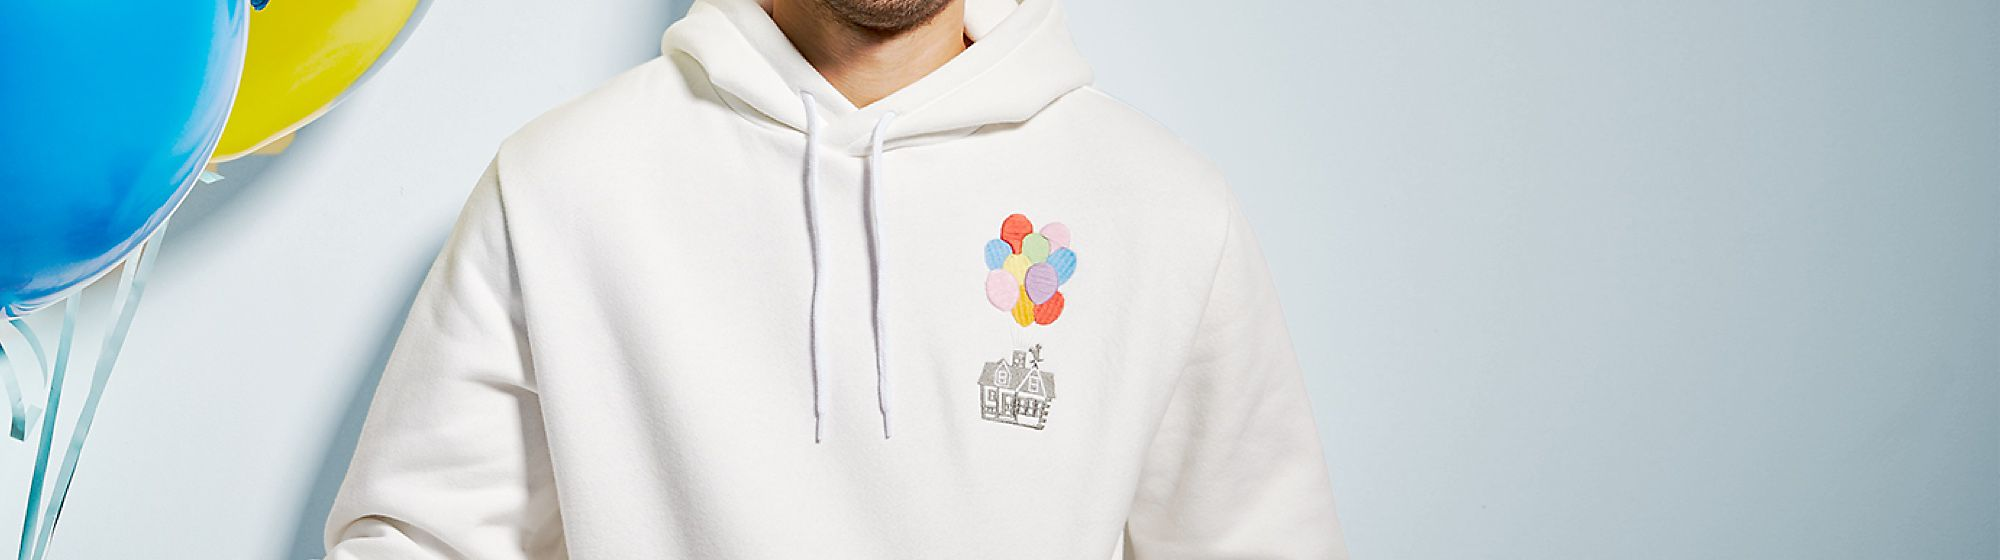 Pixar Clothing Discover our Pixar clothing range featuring t-shirts, tops, dresses, skirts and more